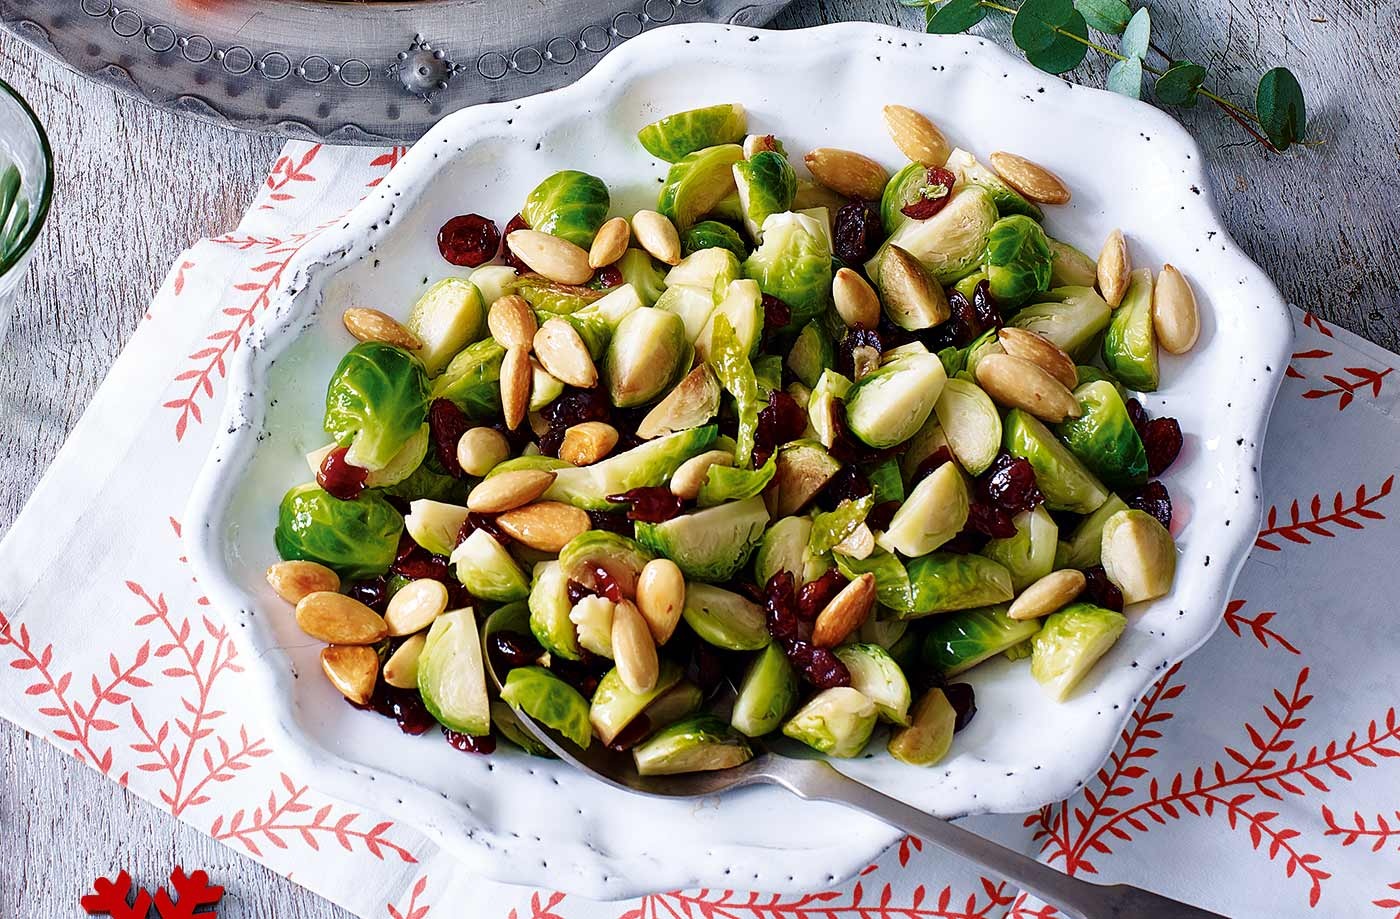 Sautéed sprouts with almonds and cranberries recipe